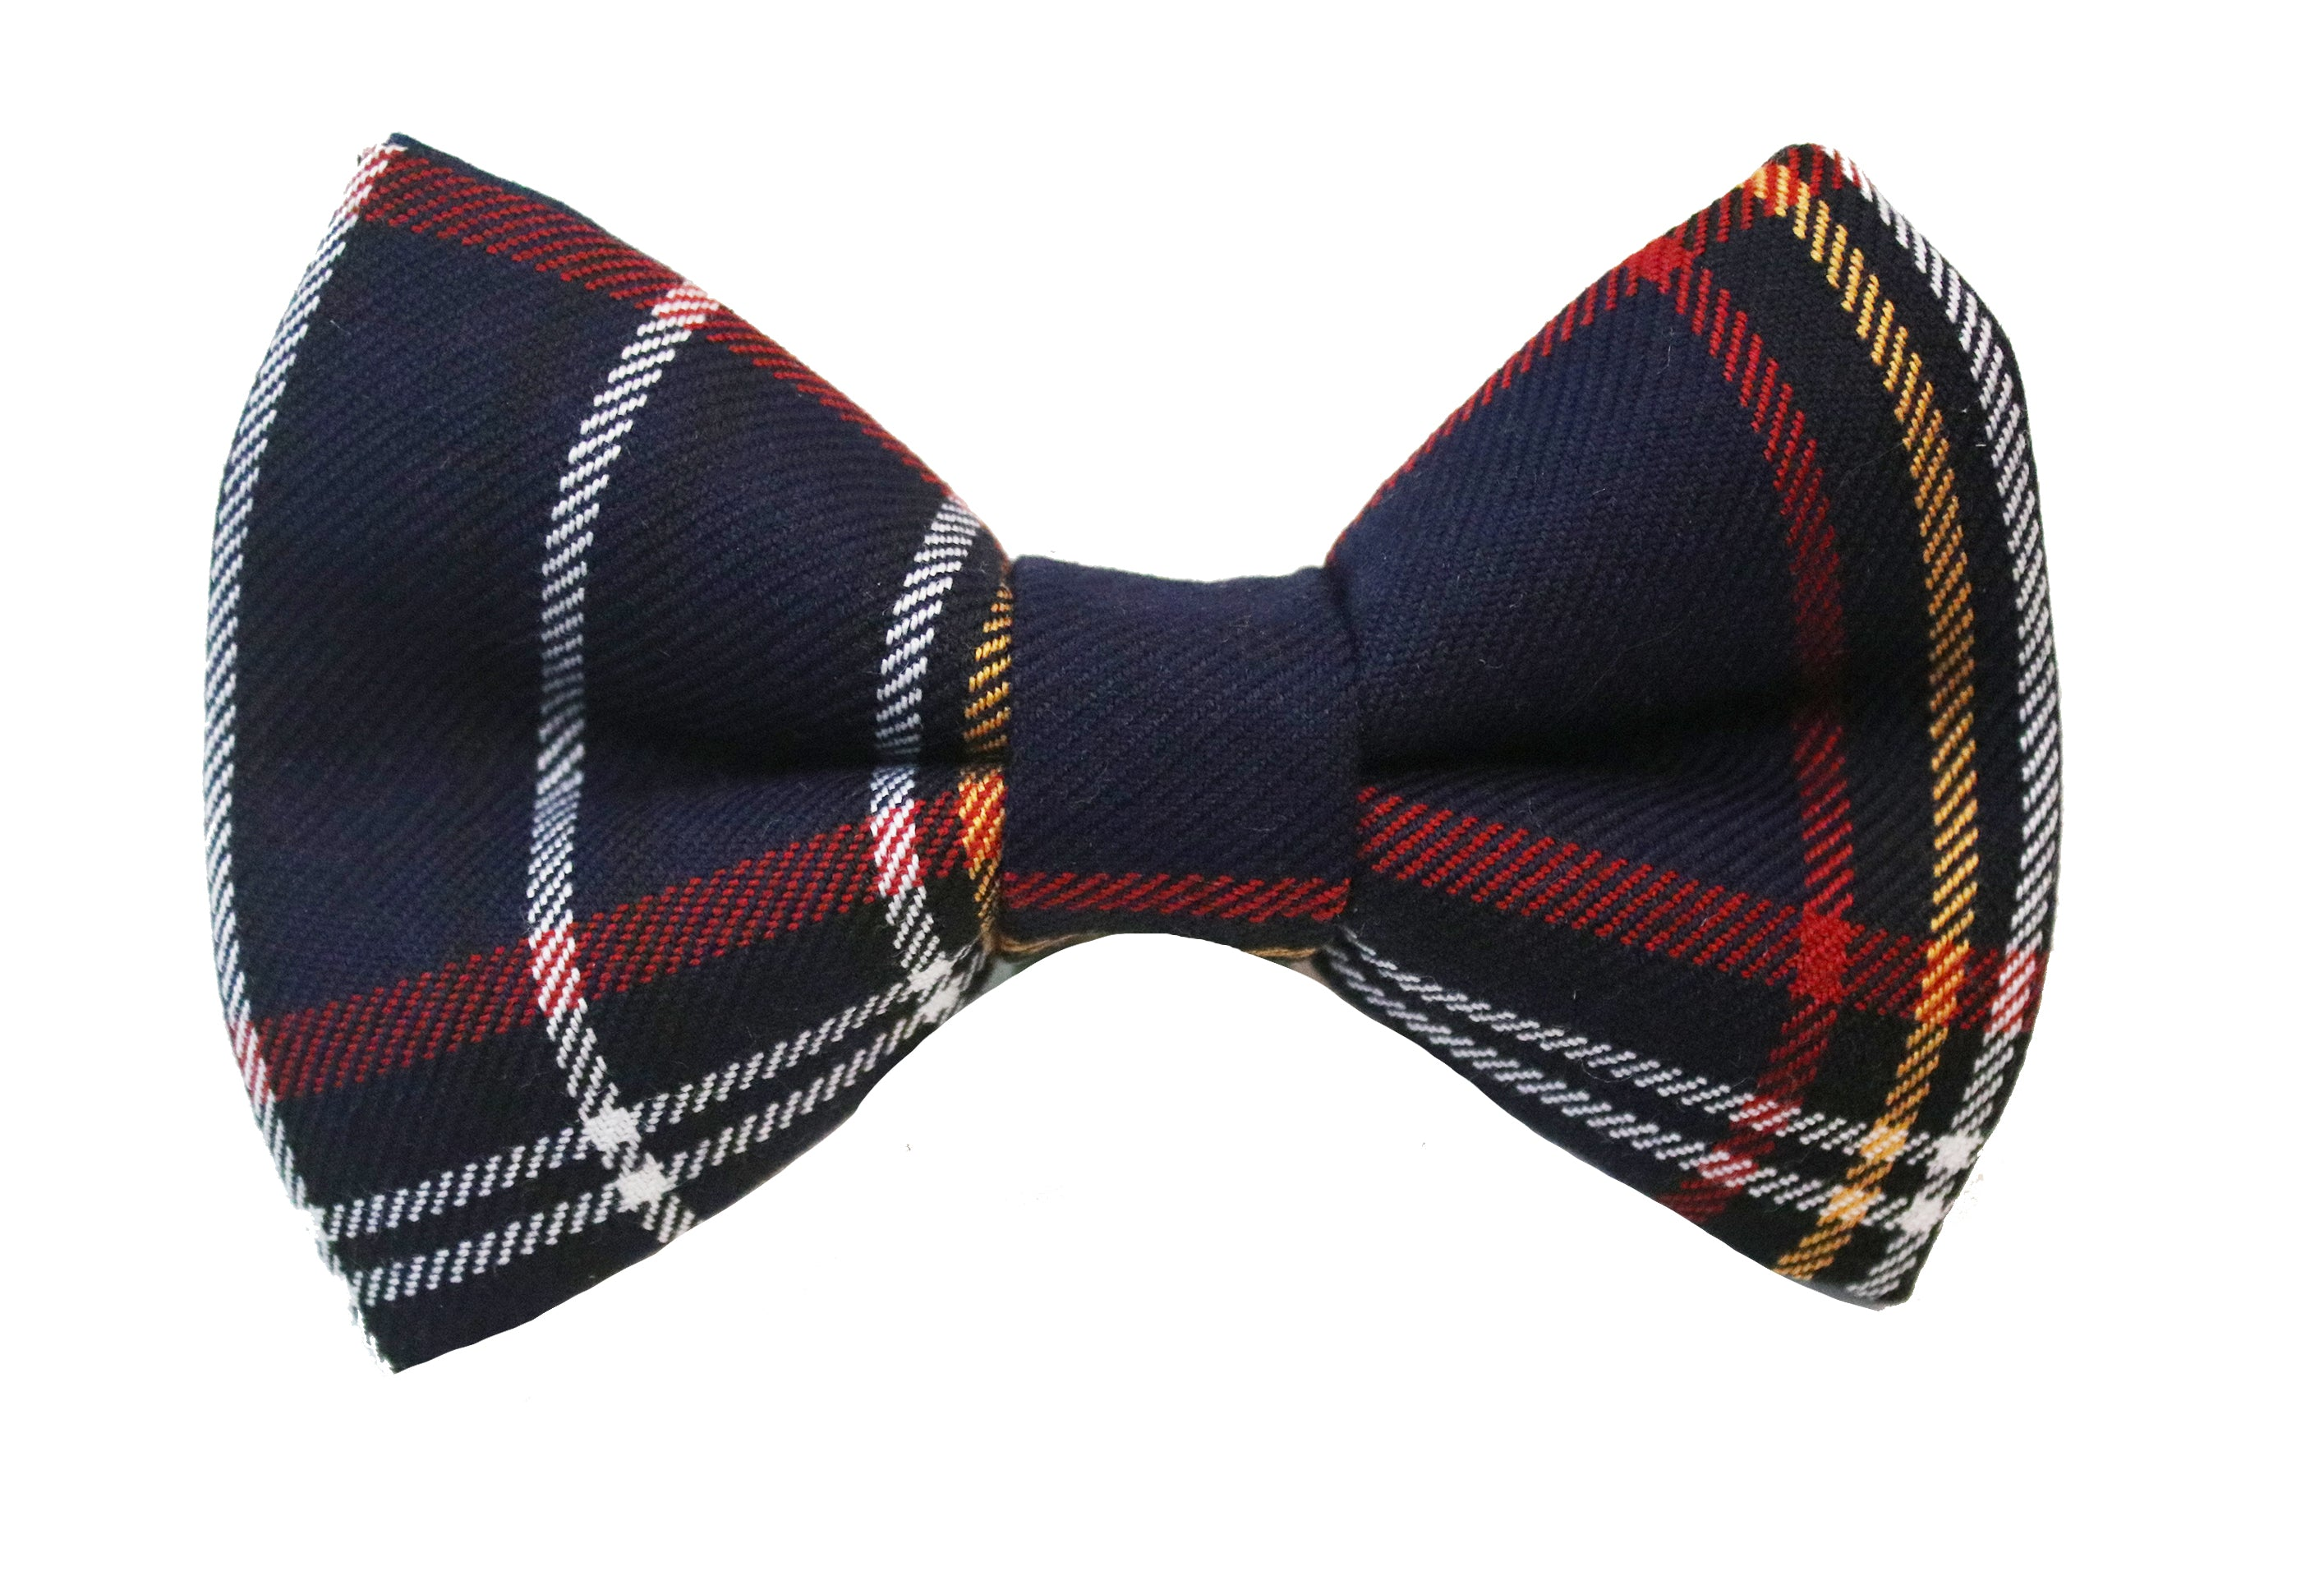 Remington Bow Tie